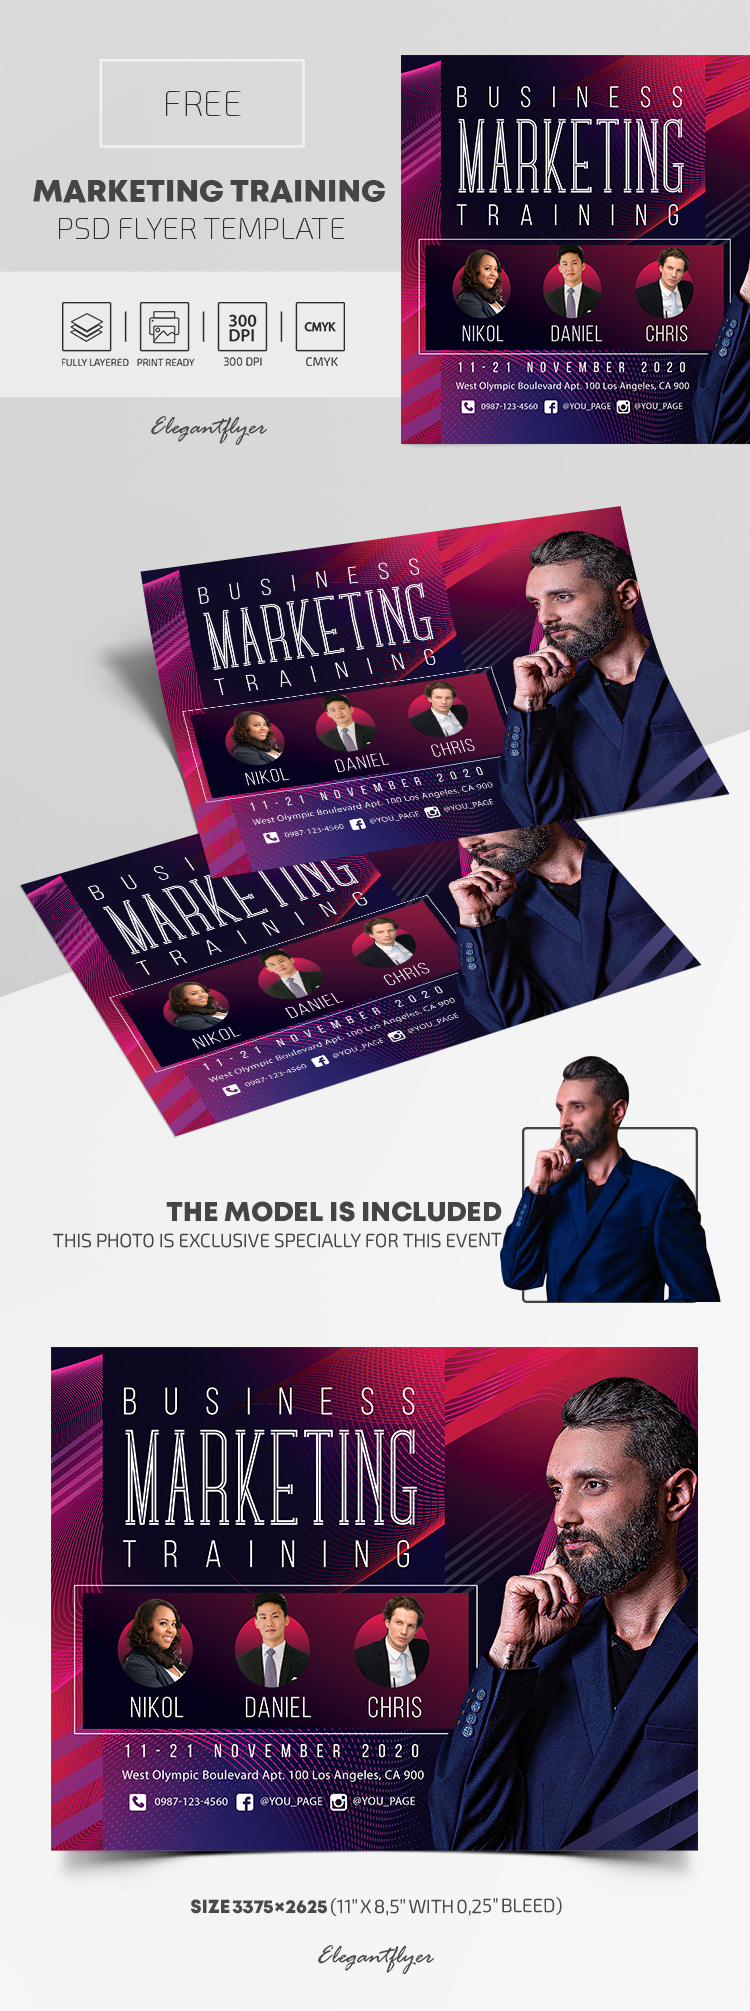 Marketing Training – Free PSD Flyer Template